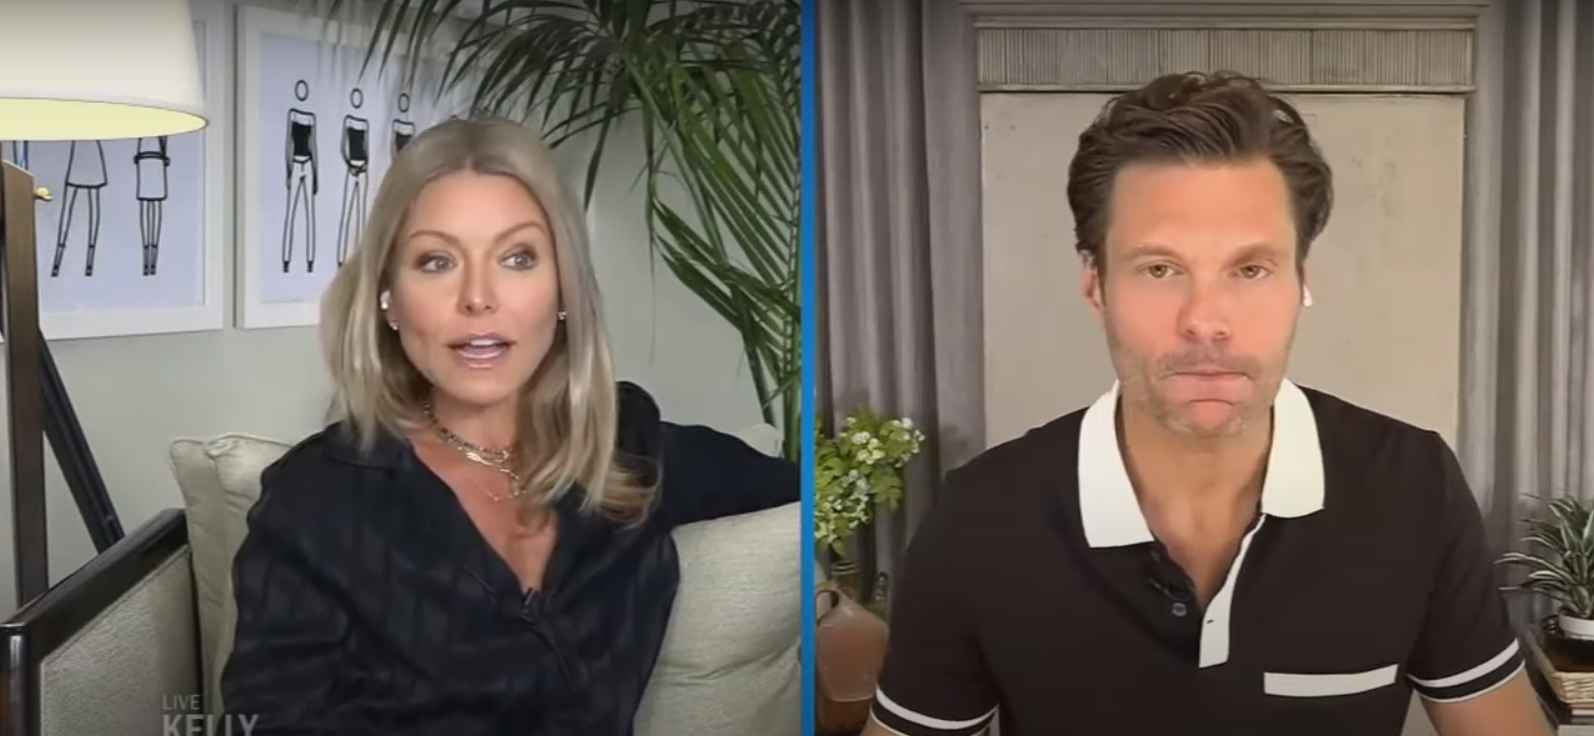 Kelly Ripa and Ryan Seacrest of Live with Kelly and Ryan